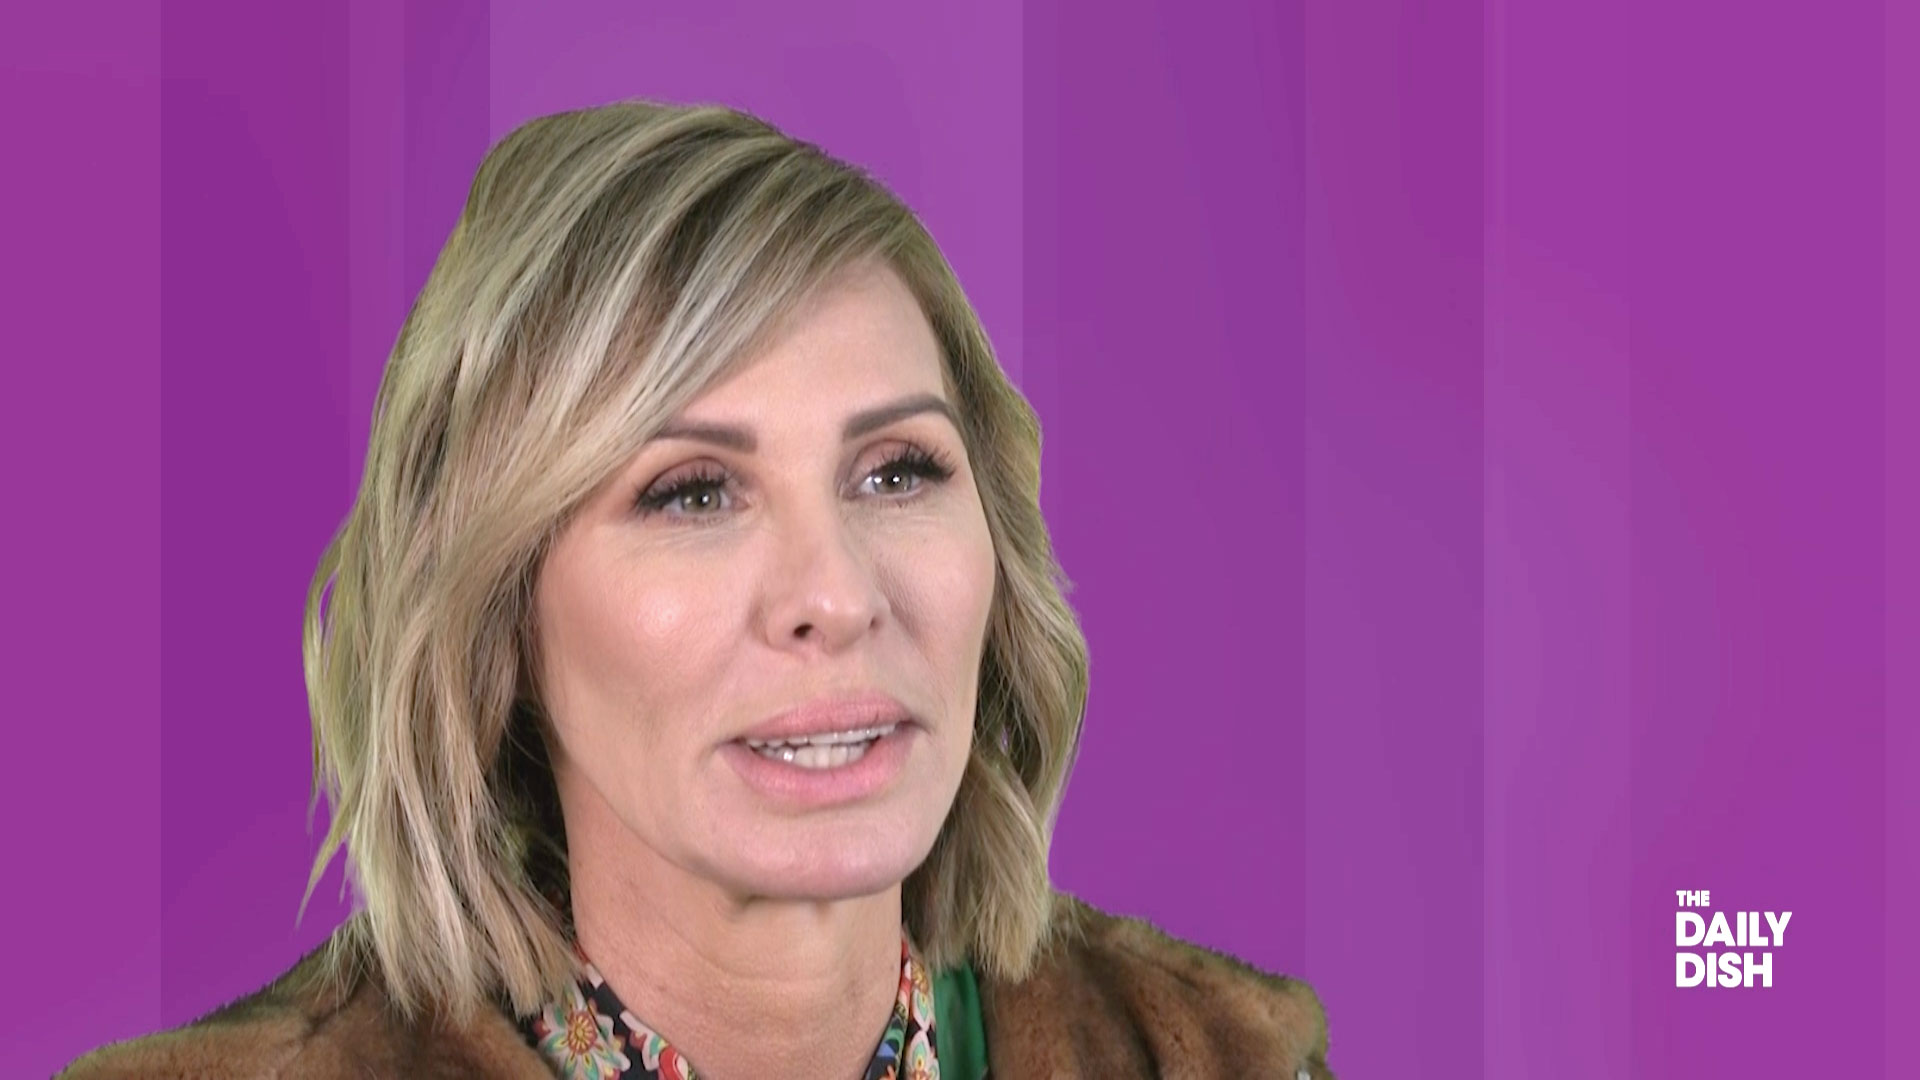 Carole Radziwill Says Luann de Lesseps Should Focus On Her Own Addictions And Family Problems